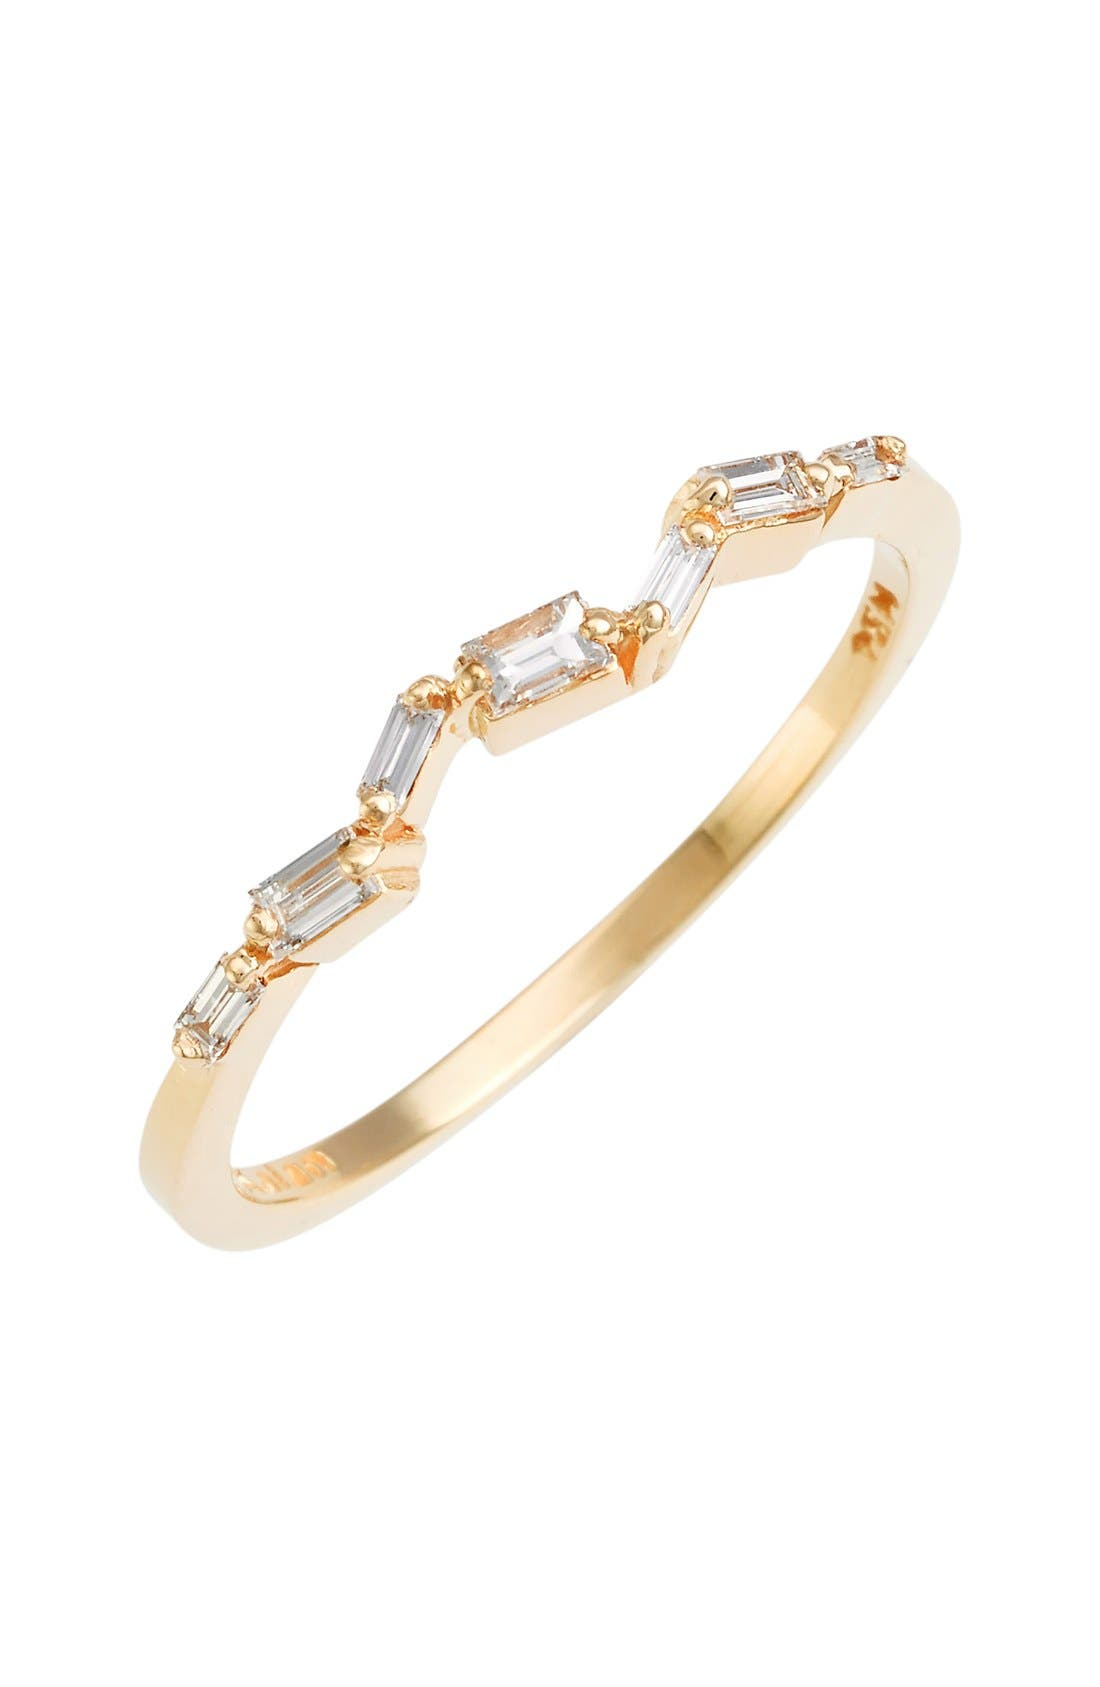 Thin Baguette Stacking Band Ring,                             Main thumbnail 1, color,                             710